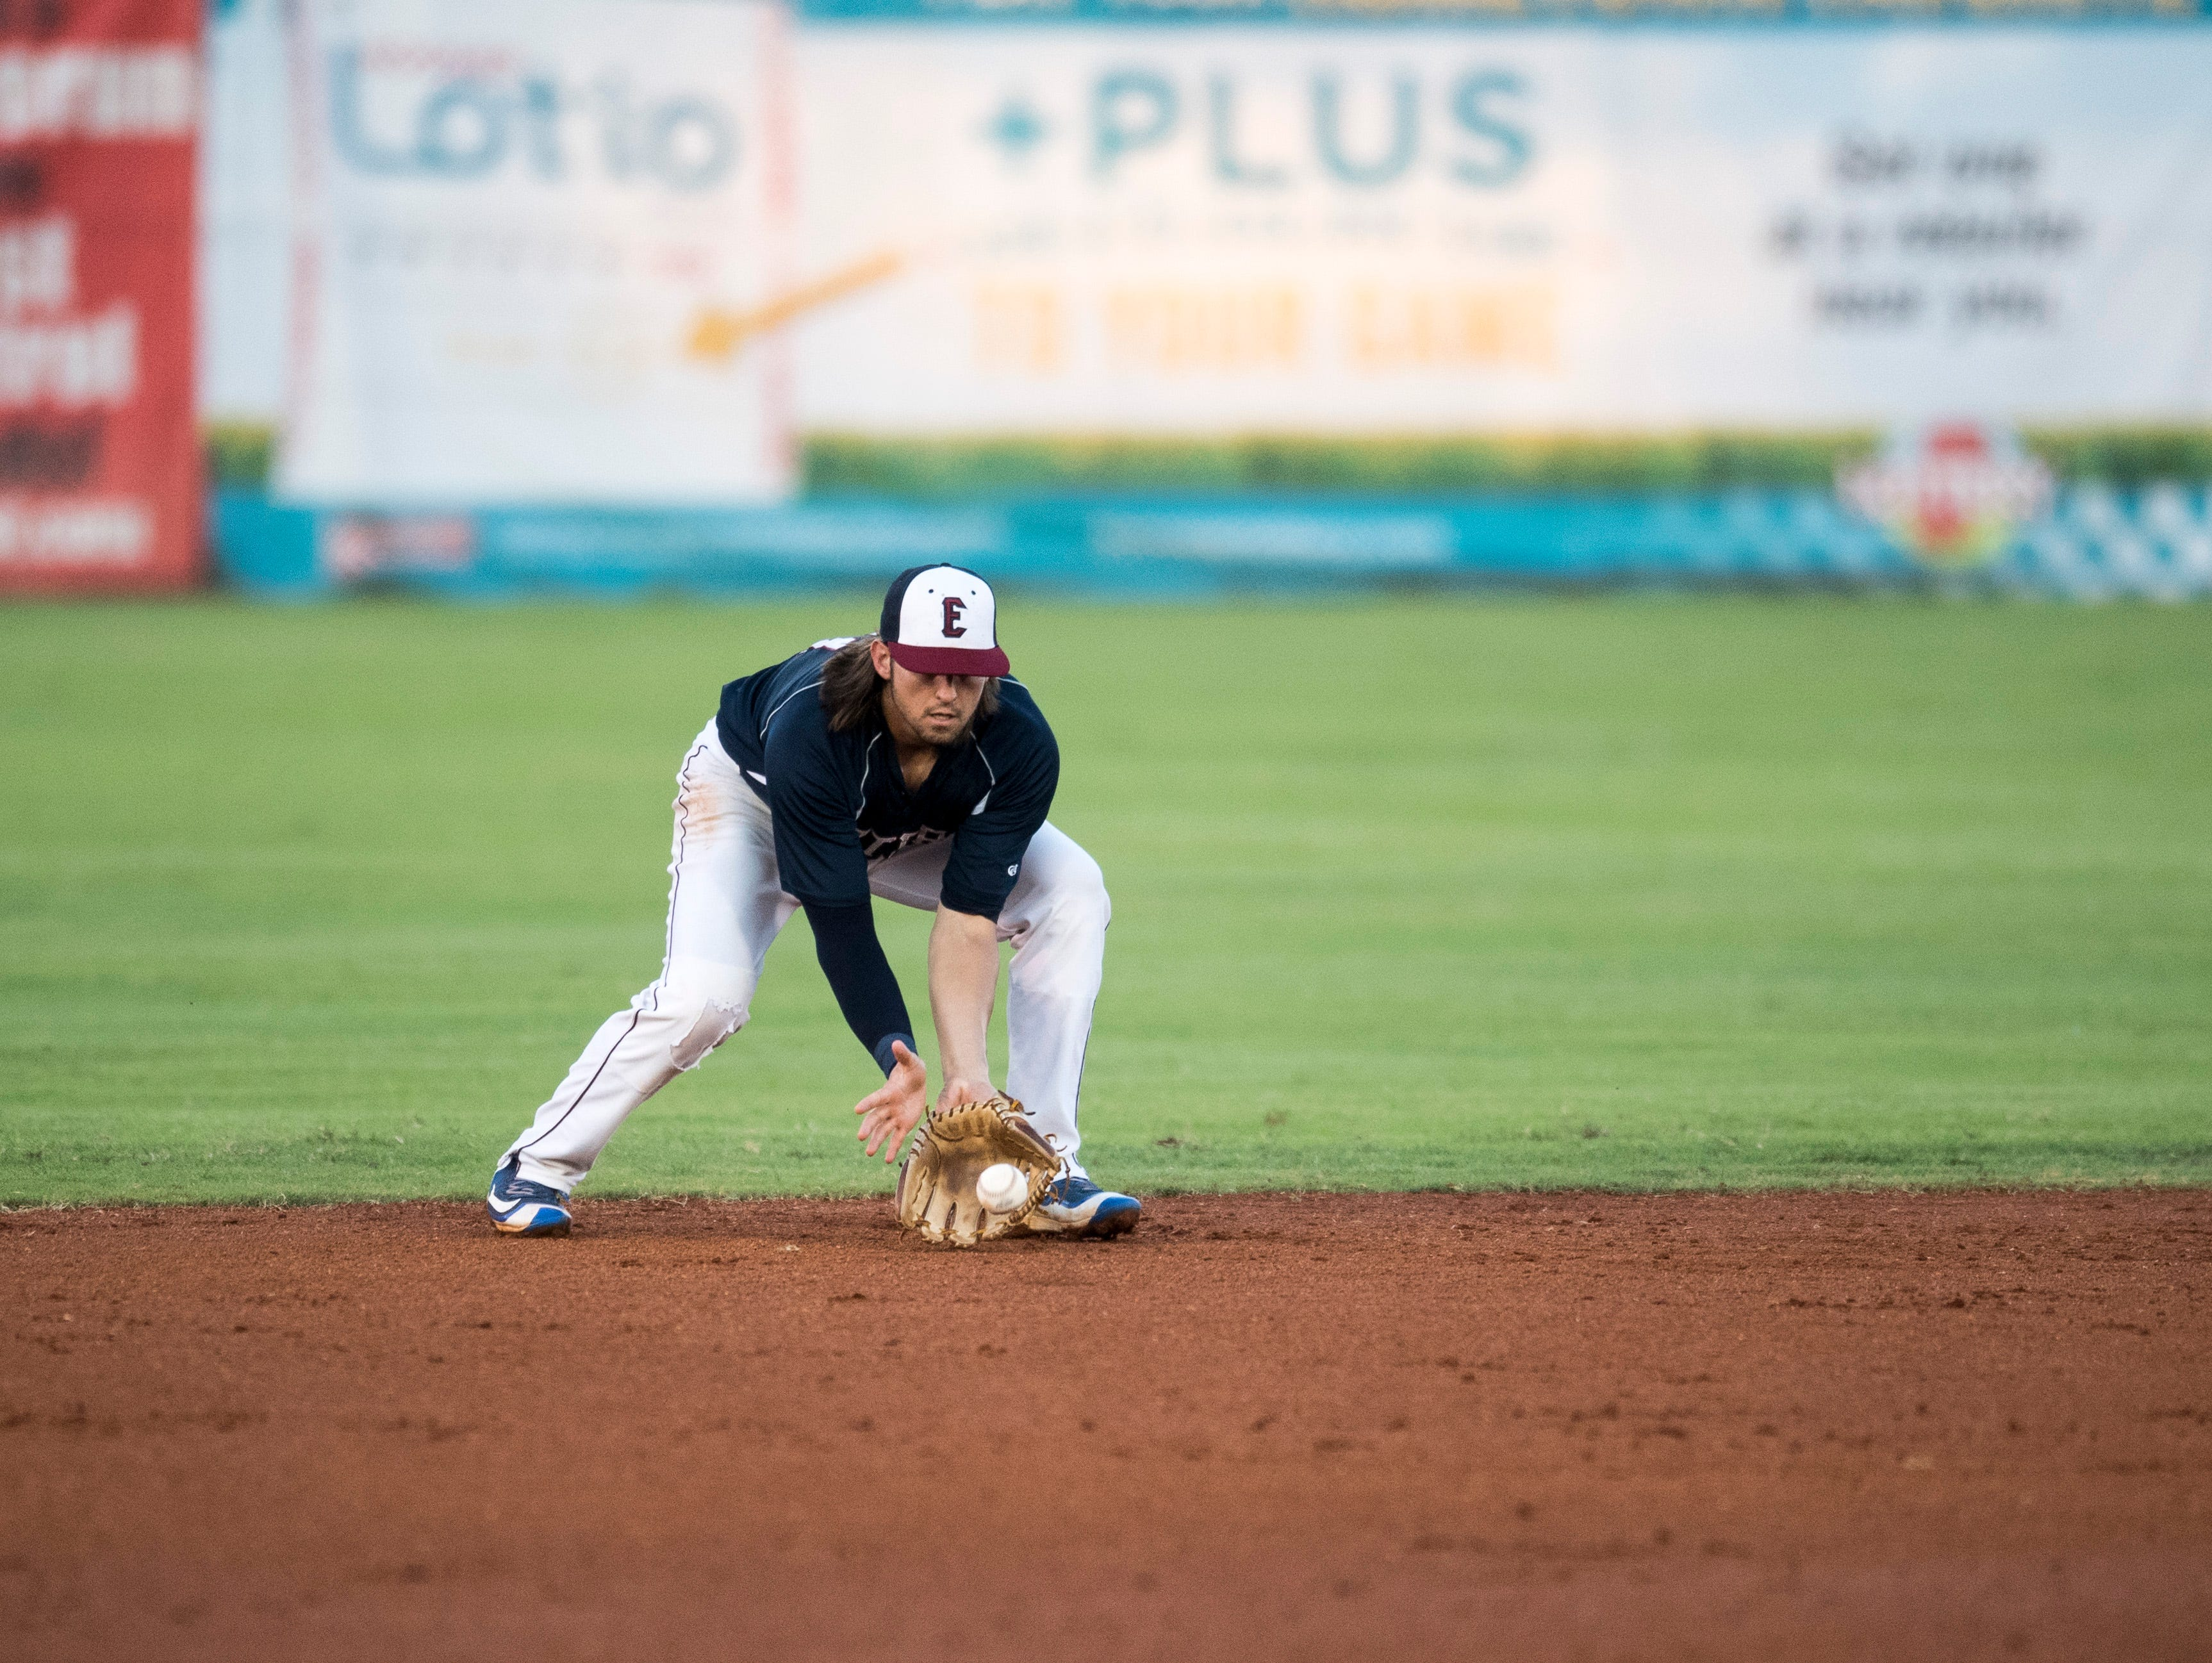 Evansville's J.J. Gould (31) fields a grounder during game two of the Frontier League Division Series at Bosse Field against the Washington Wild Things Wednesday, September 5, 2018.